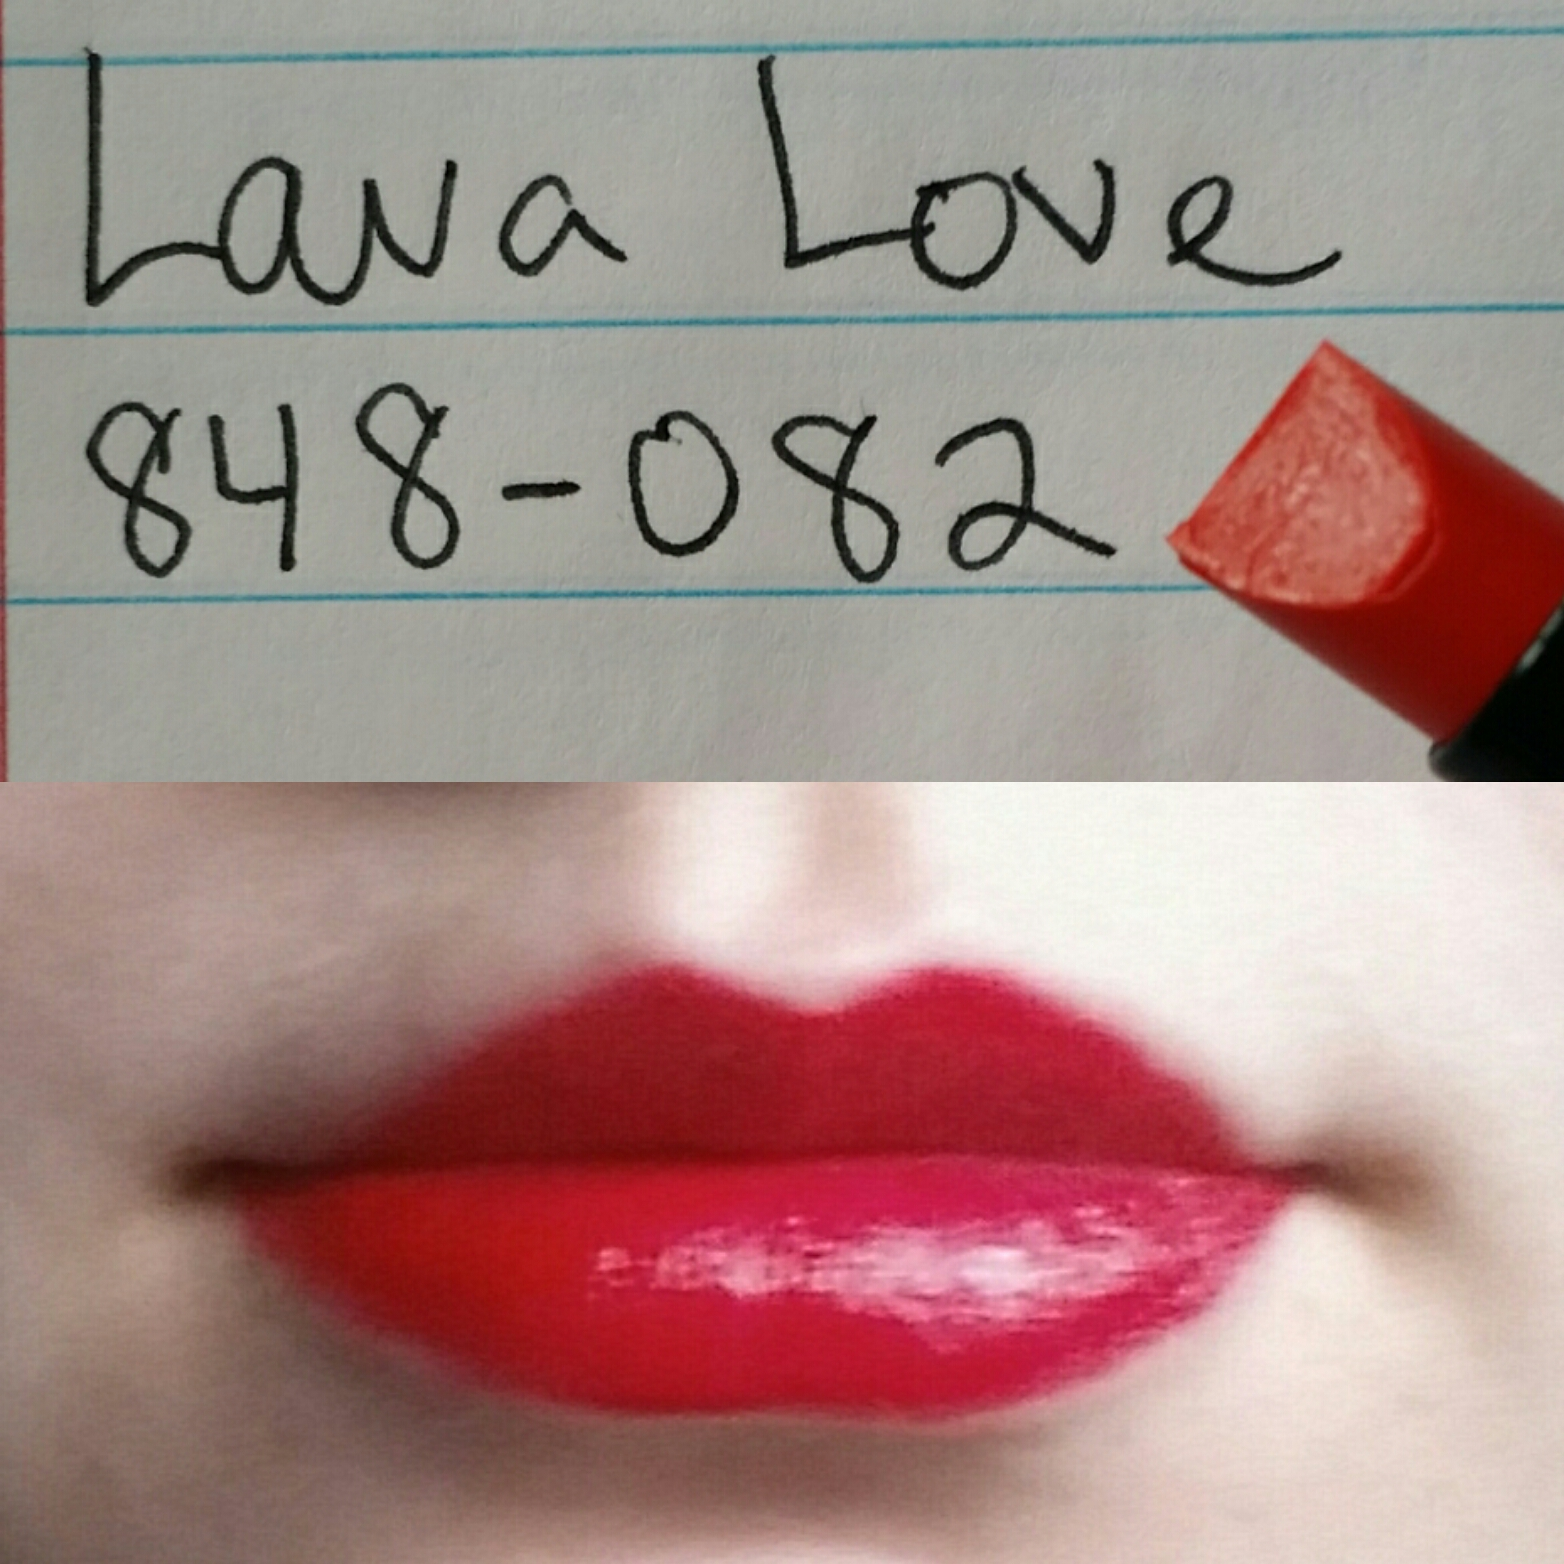 Ultra Color Lipstick Swatches Part 2 Avon By Laura Richwine